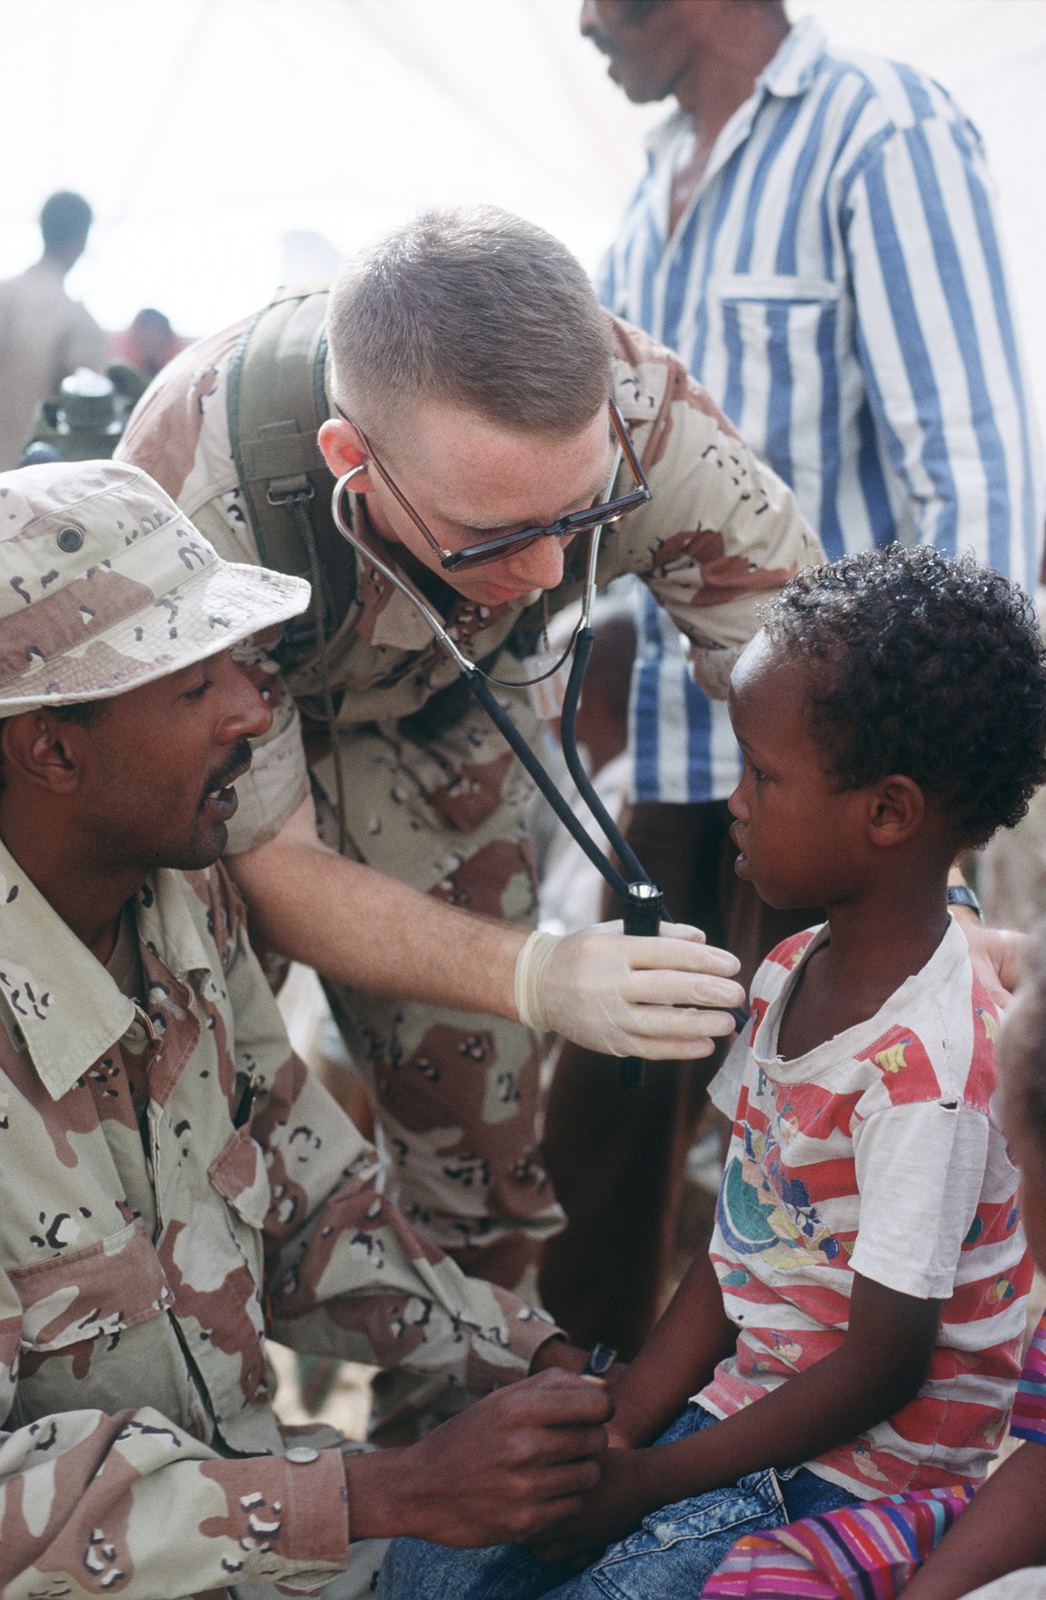 US Navy LT. Dennis Mckenna, a surgeon with the 46th Medical Task Force treat Somali children at a recent MEDCAP exercise. LT. Mckenna communicates with the children through the aid of an interpreter, Abdi Ahmed